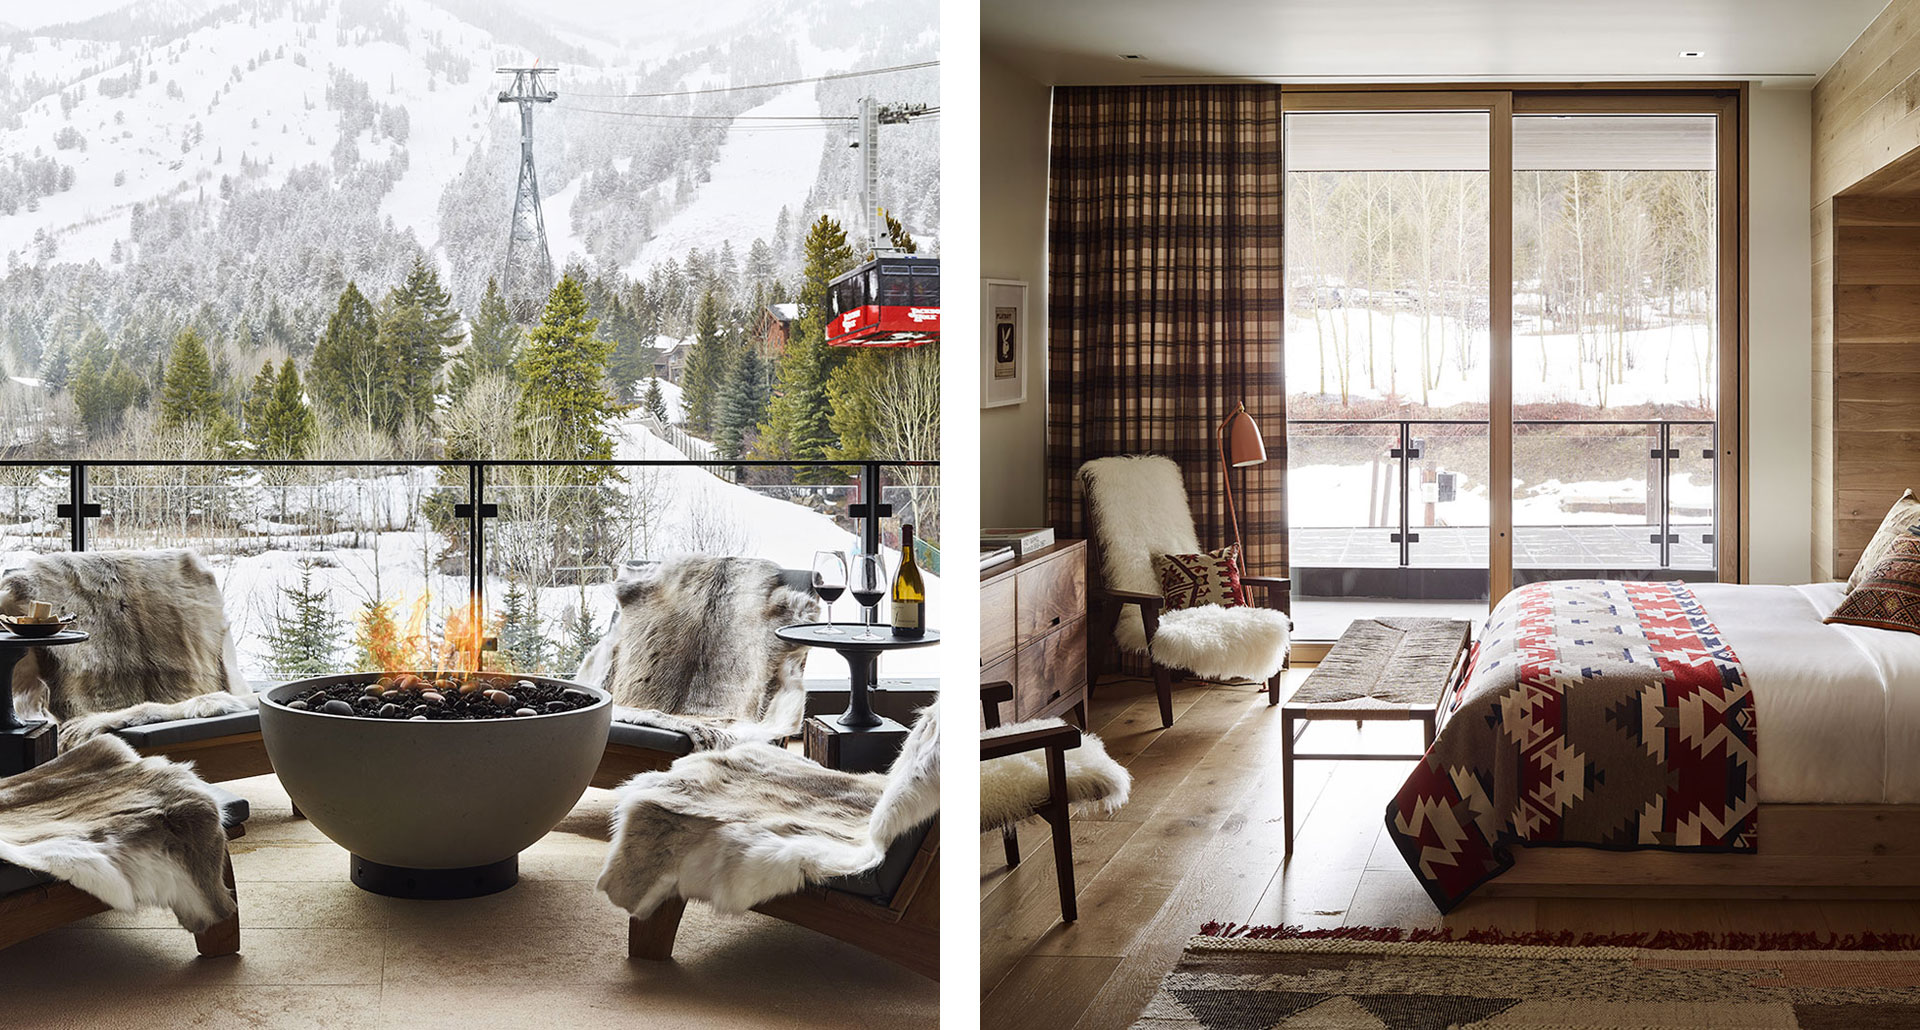 Caldera House - boutique hotel in Teton Village